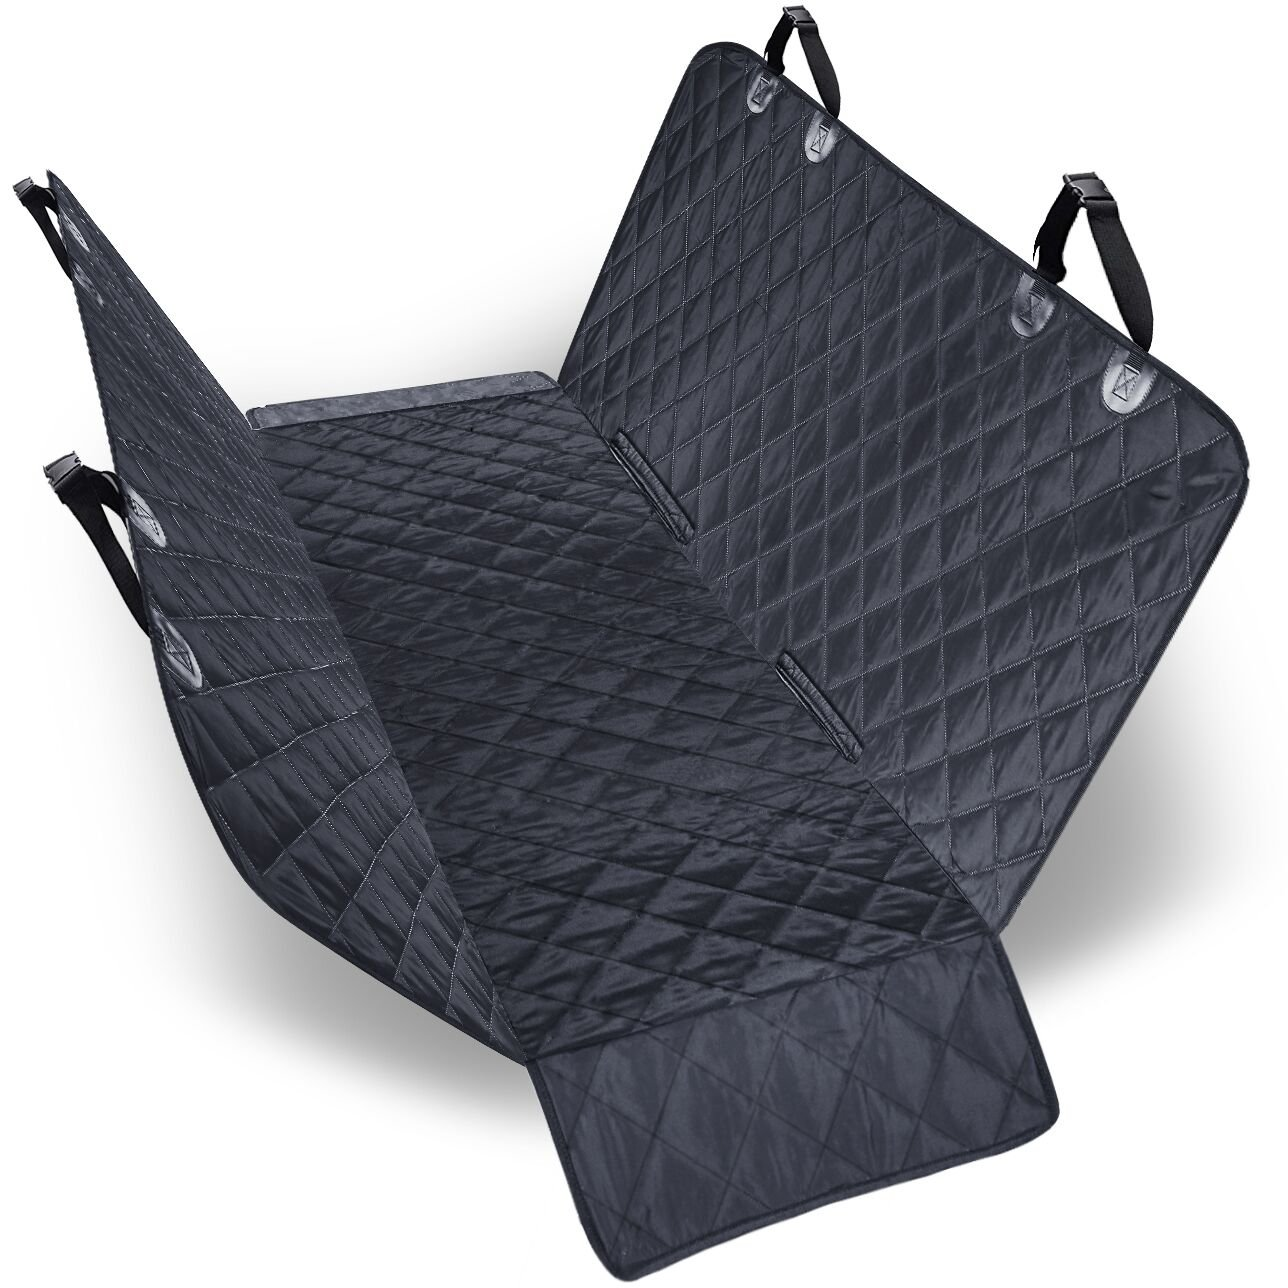 URPOWER 100% Waterproof Dog Car Seat Covers Car Cover for Dogs Pet Seat Cover with Side Flaps Hammock Convertible Scratch Proof Nonslip Washable Padded Dog Seat Cover for Cars Trucks and SUVs